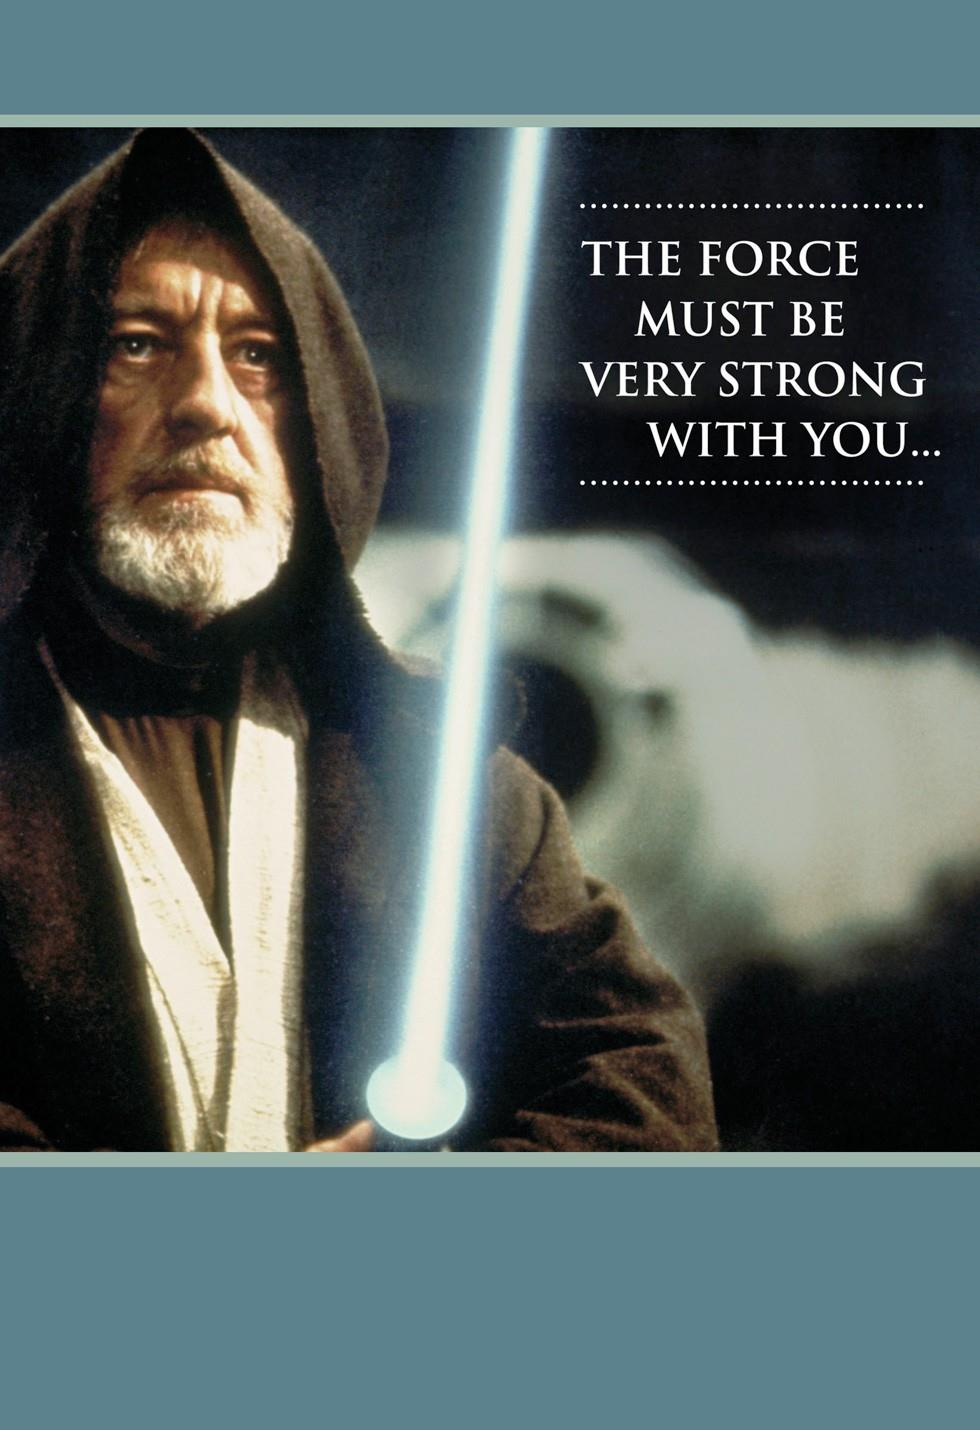 Star Wars Strong With The Force Musical Congratulations